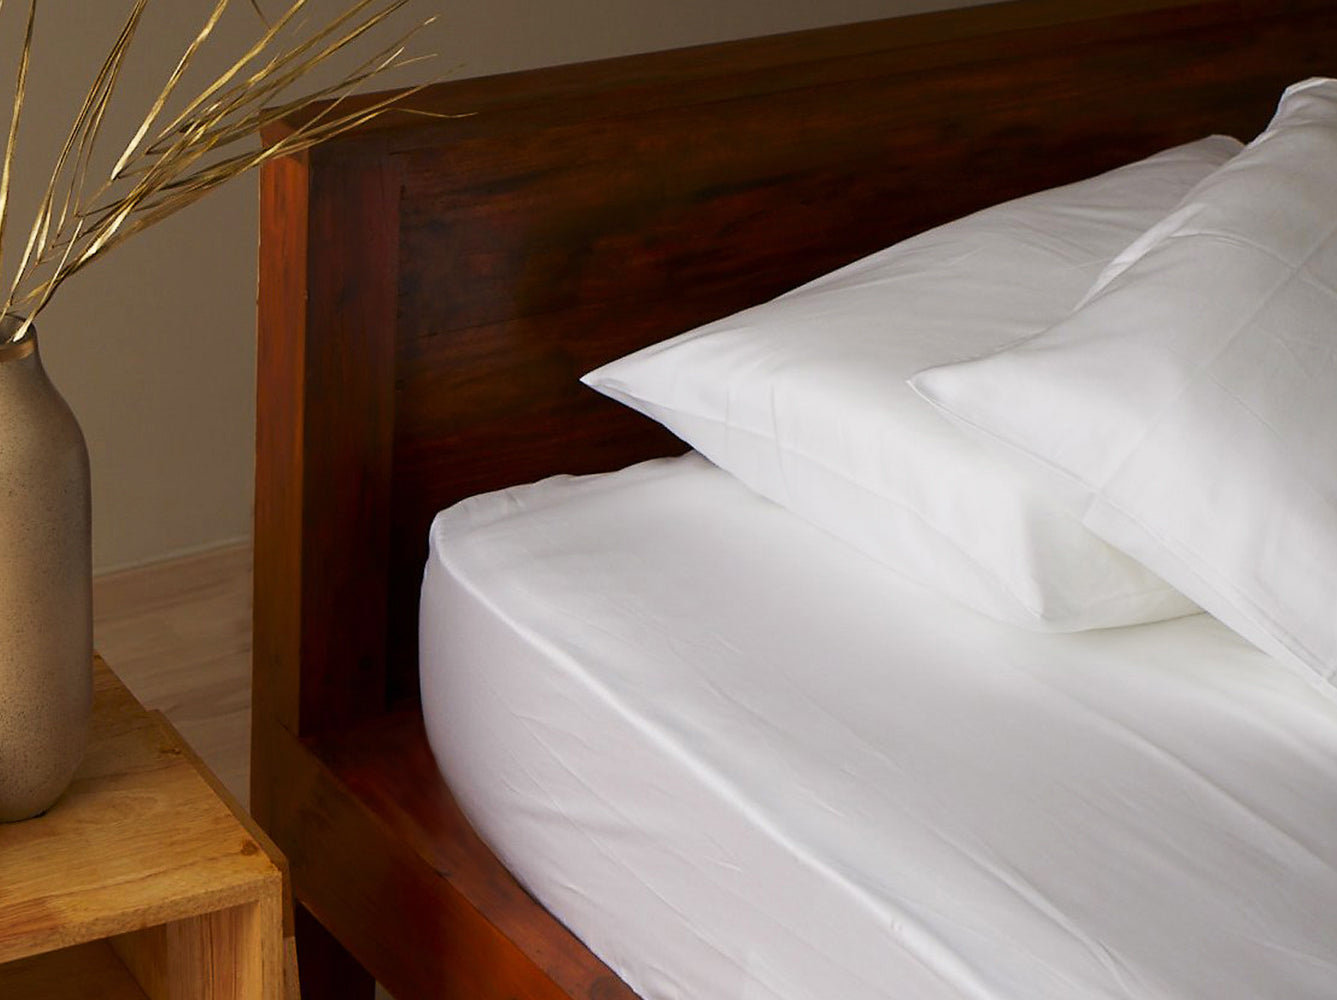 buy bedsheets online, luxury bed covers india, luxury bed sheets online india, shop bed sheets online